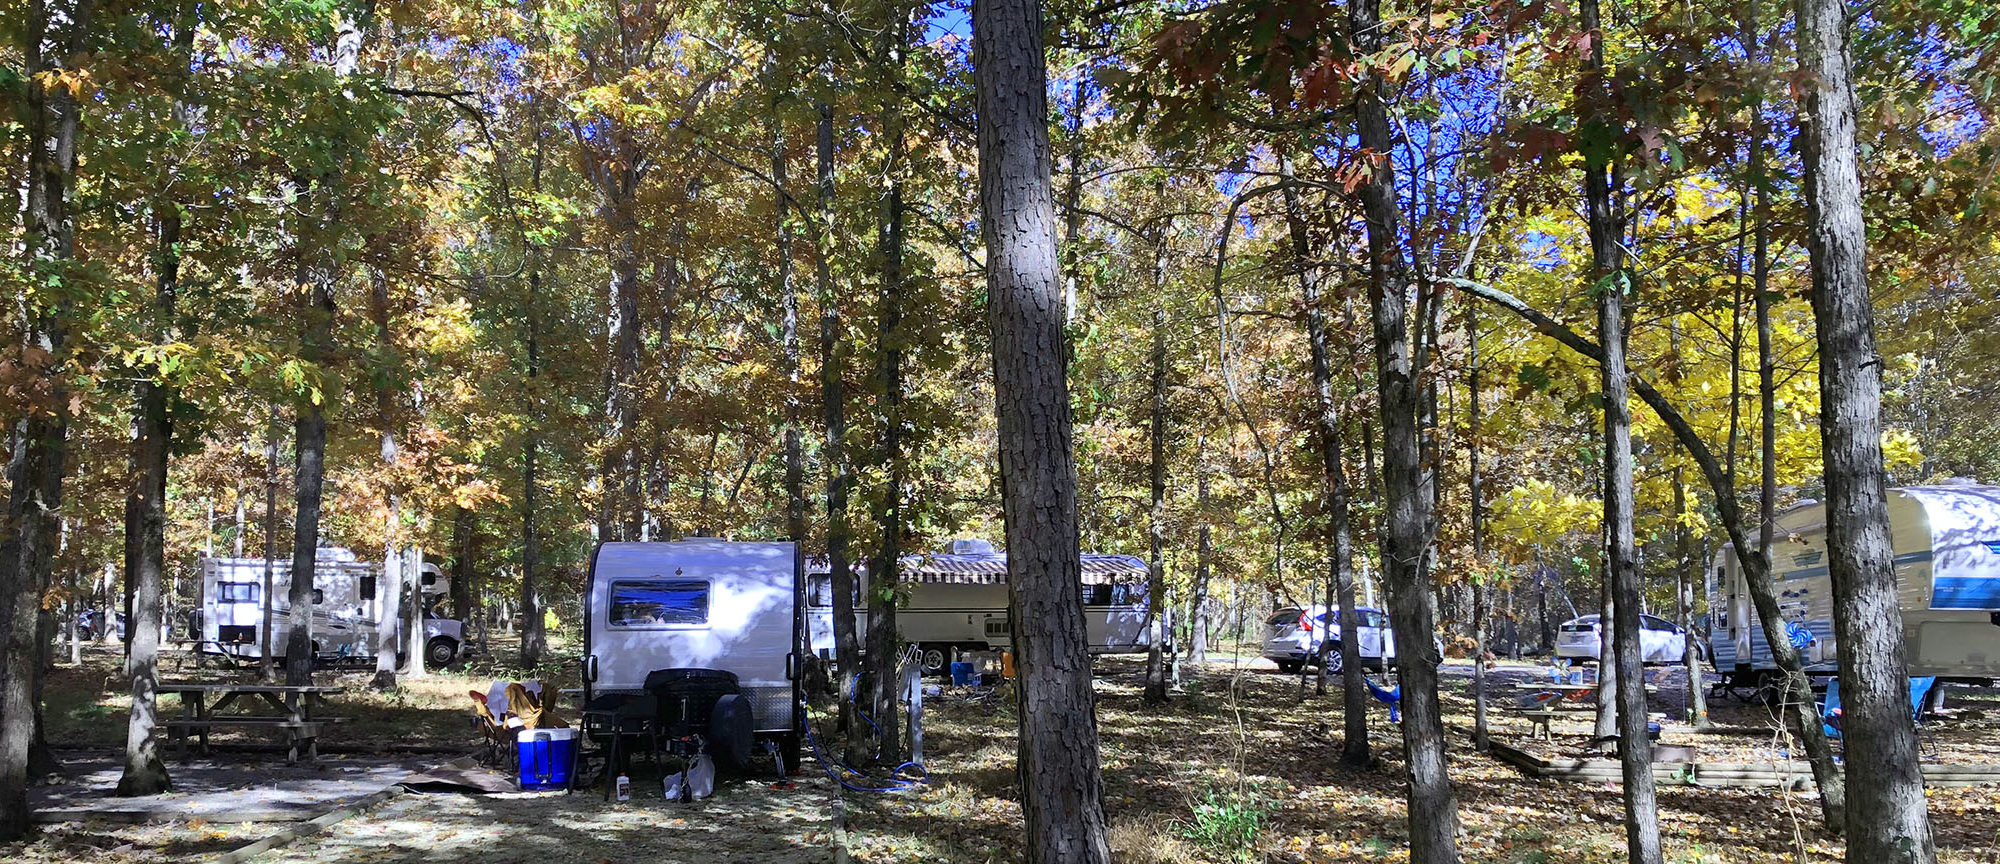 Campgrounds for camping and RV in Alabama near Mentone City. Beautiful river, waterfalls, online reservations, great reviews